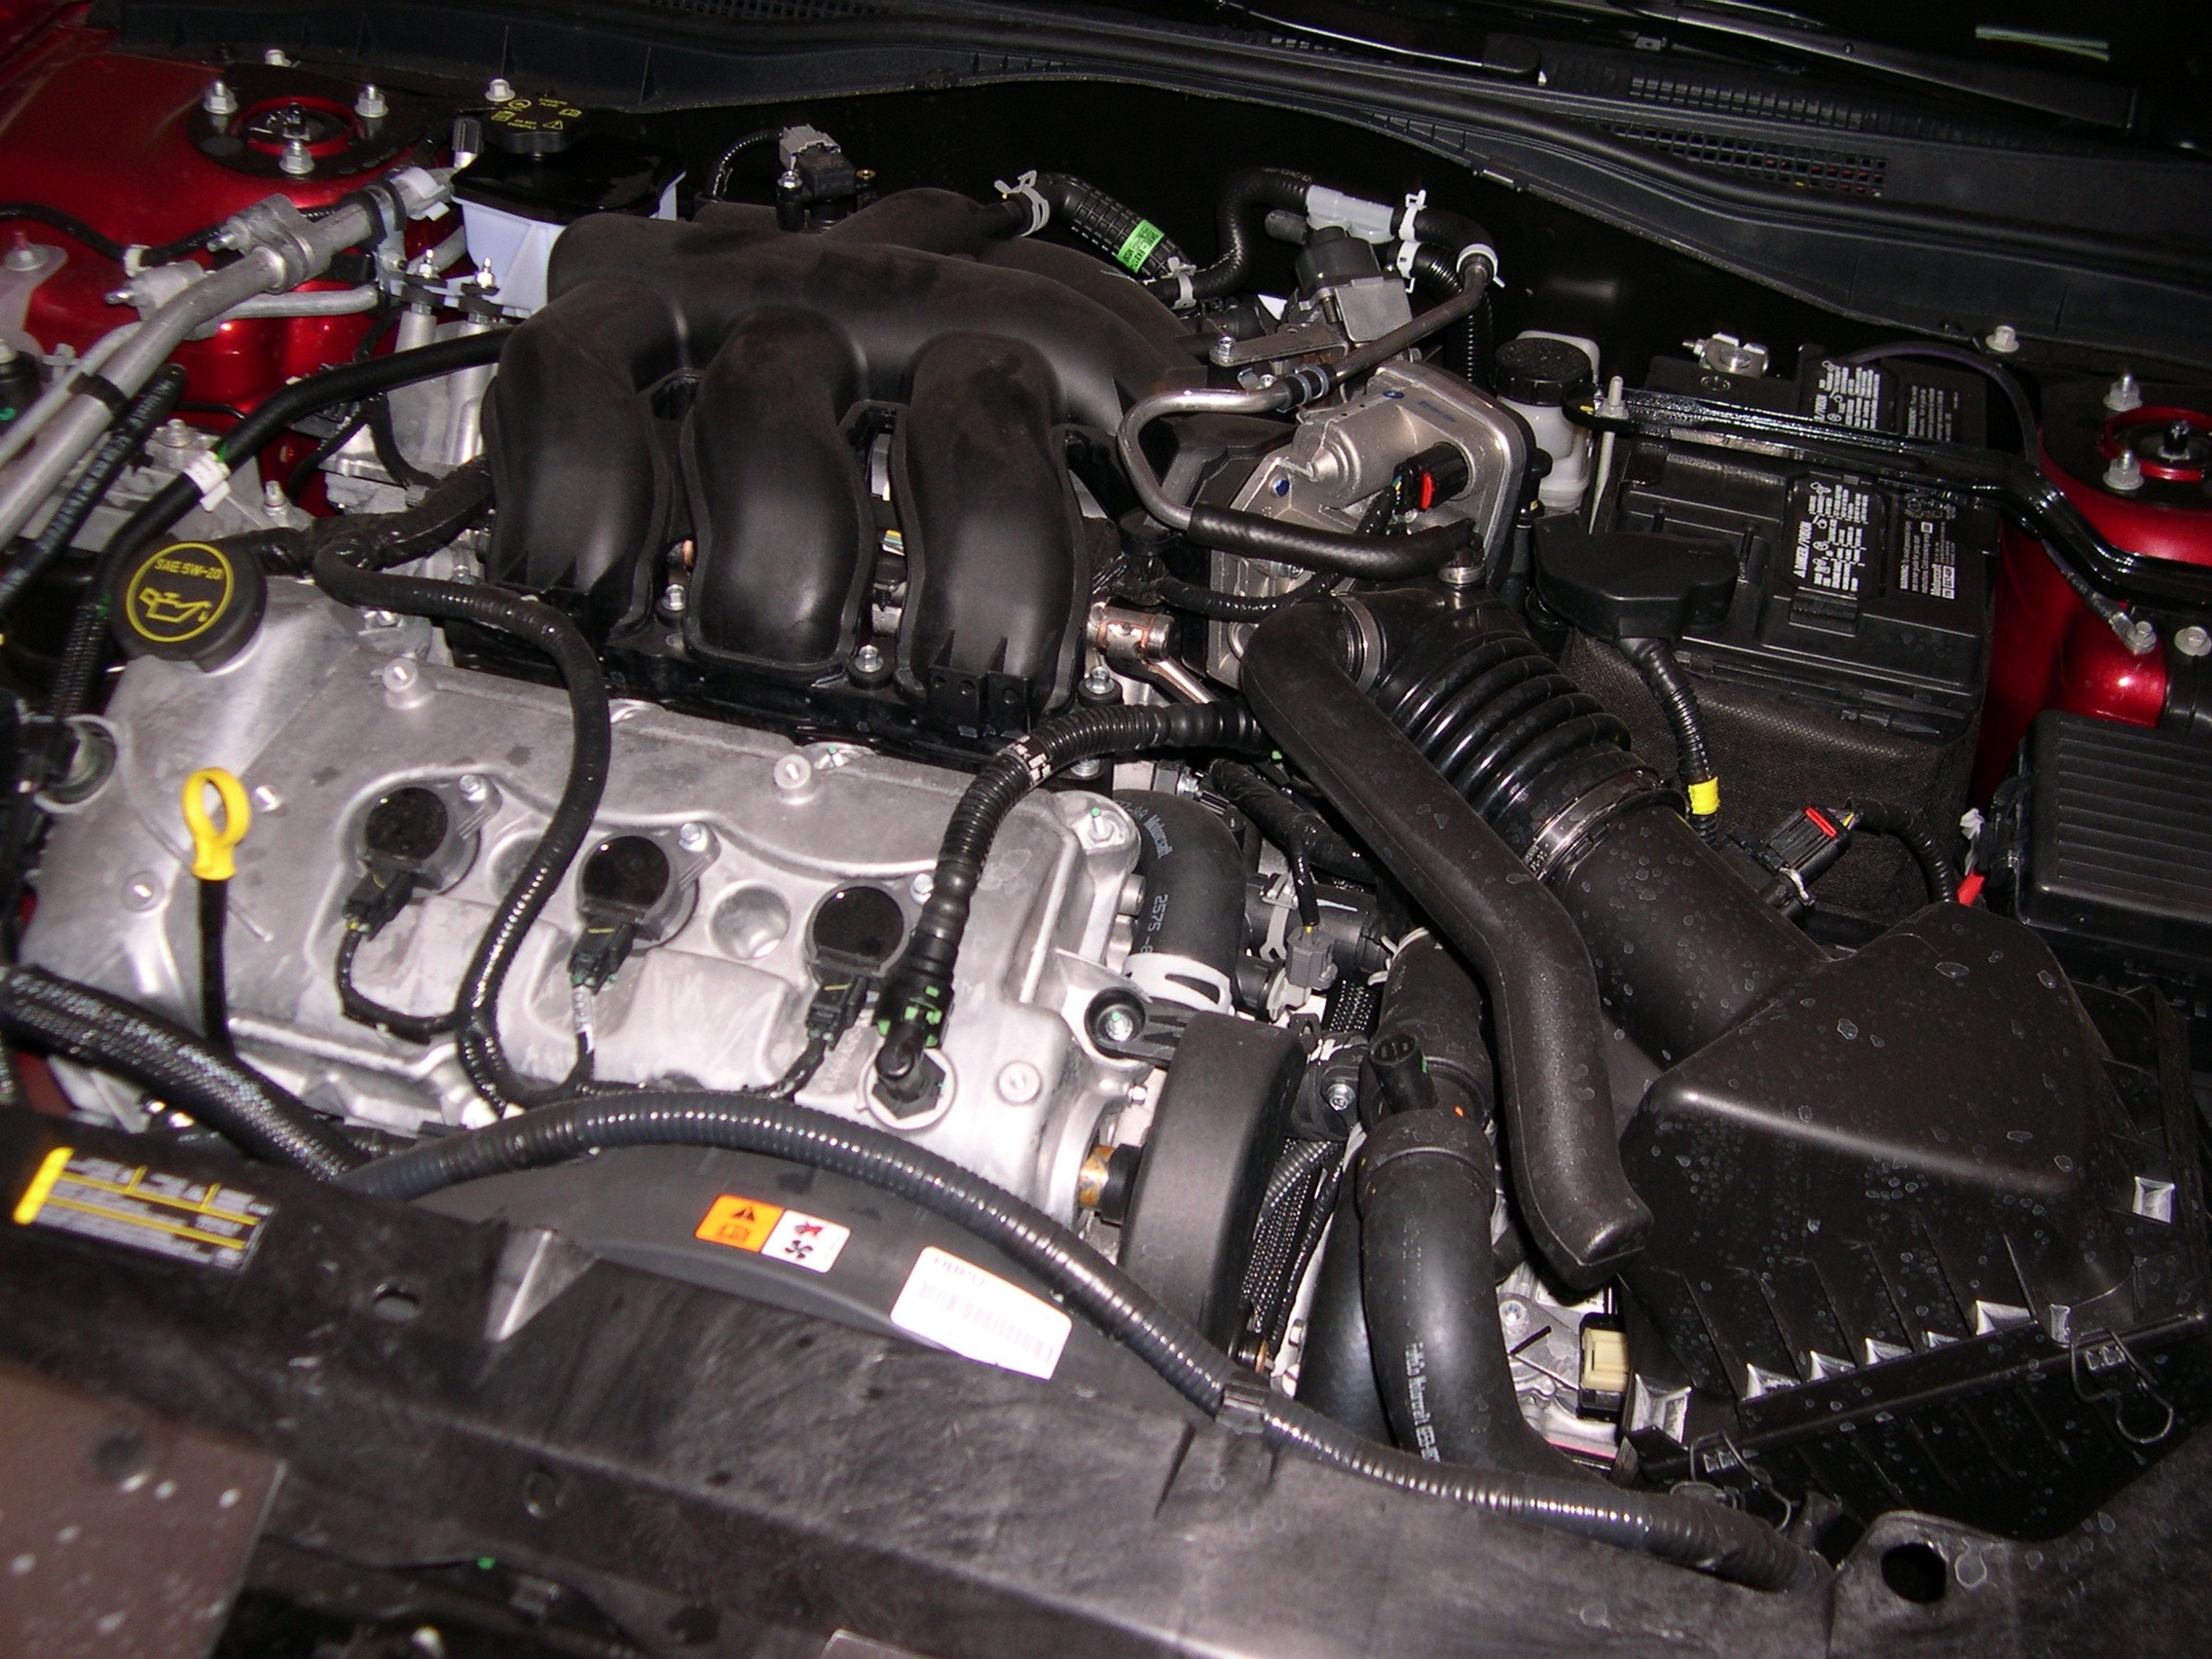 Mondeo Engine Diagram Ford Mk4 Wiring Download File 2006 Mercury Milan Duratec 30 Wikimedia Mons Of